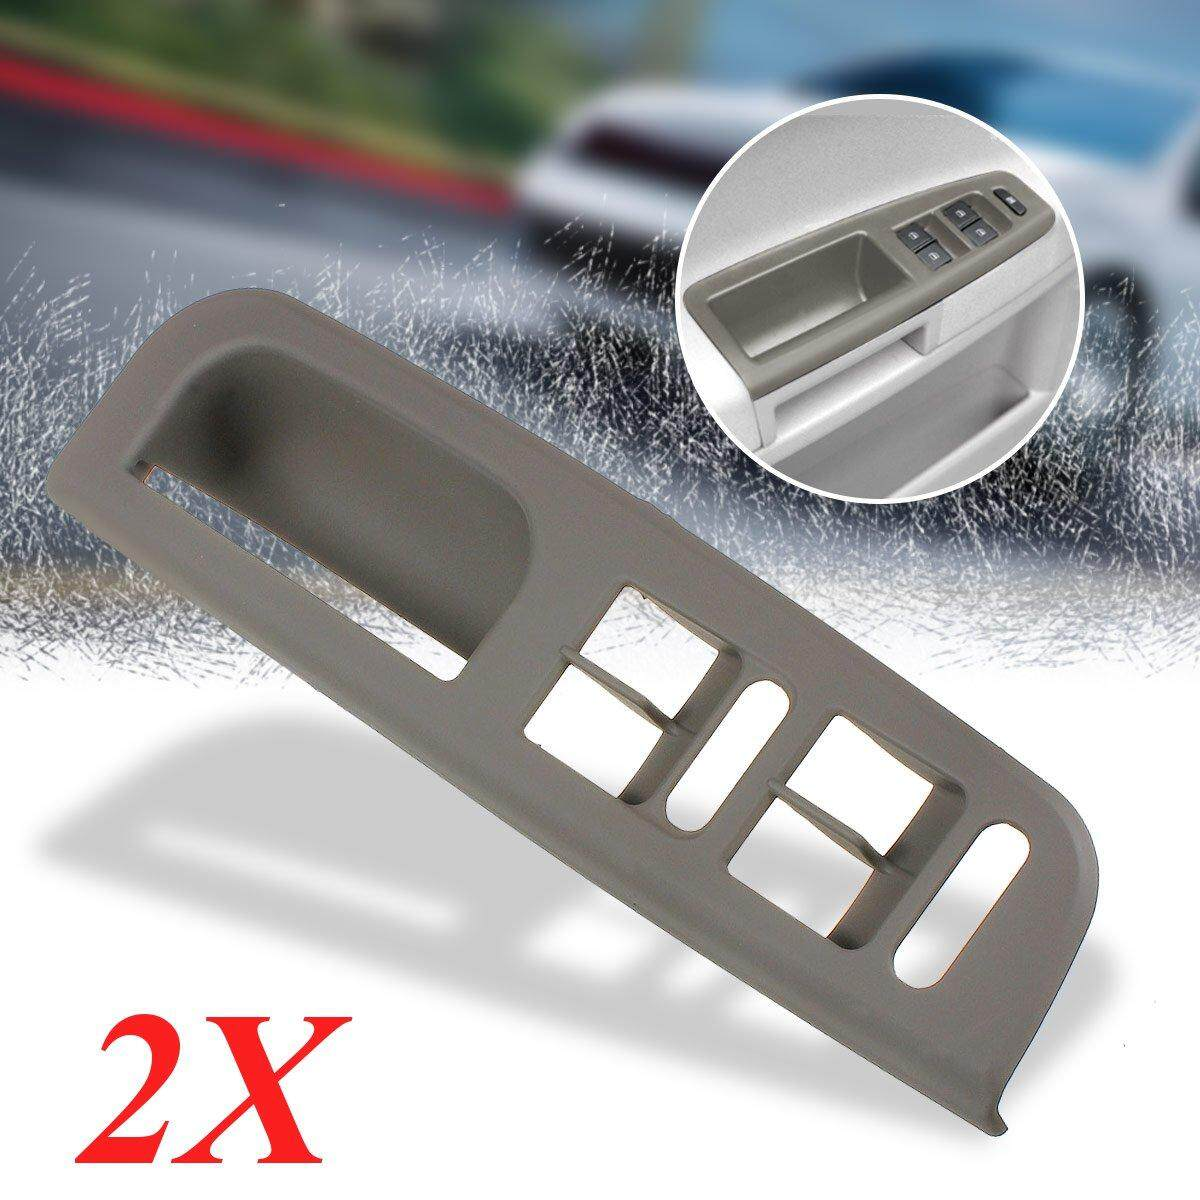 【free Shipping + Flash Deal】2pcs Grey Master Window Switch Control Panel Trim Bezel For Vw Passat Jetta Golf Mk4 By Audew.